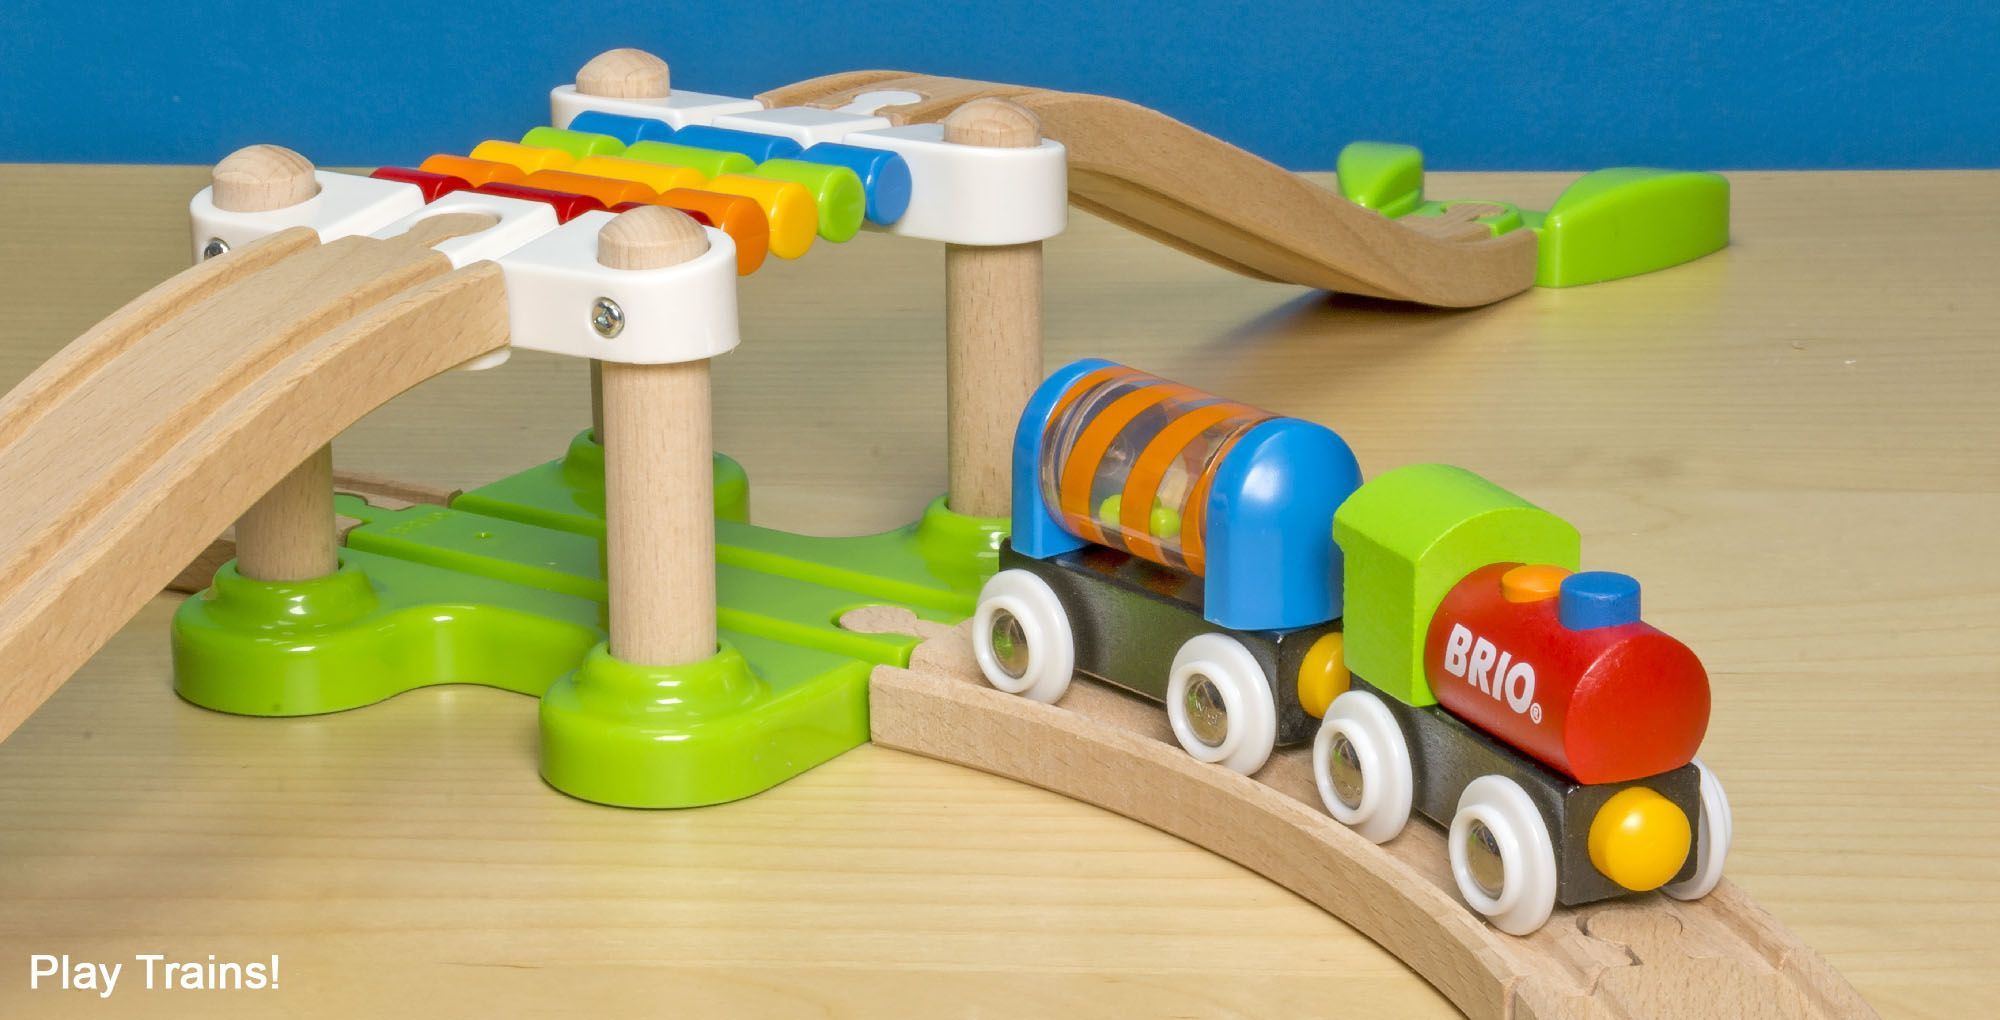 Astounding The Play Trains Guide To The Best Wooden Train Sets 2018 Theyellowbook Wood Chair Design Ideas Theyellowbookinfo